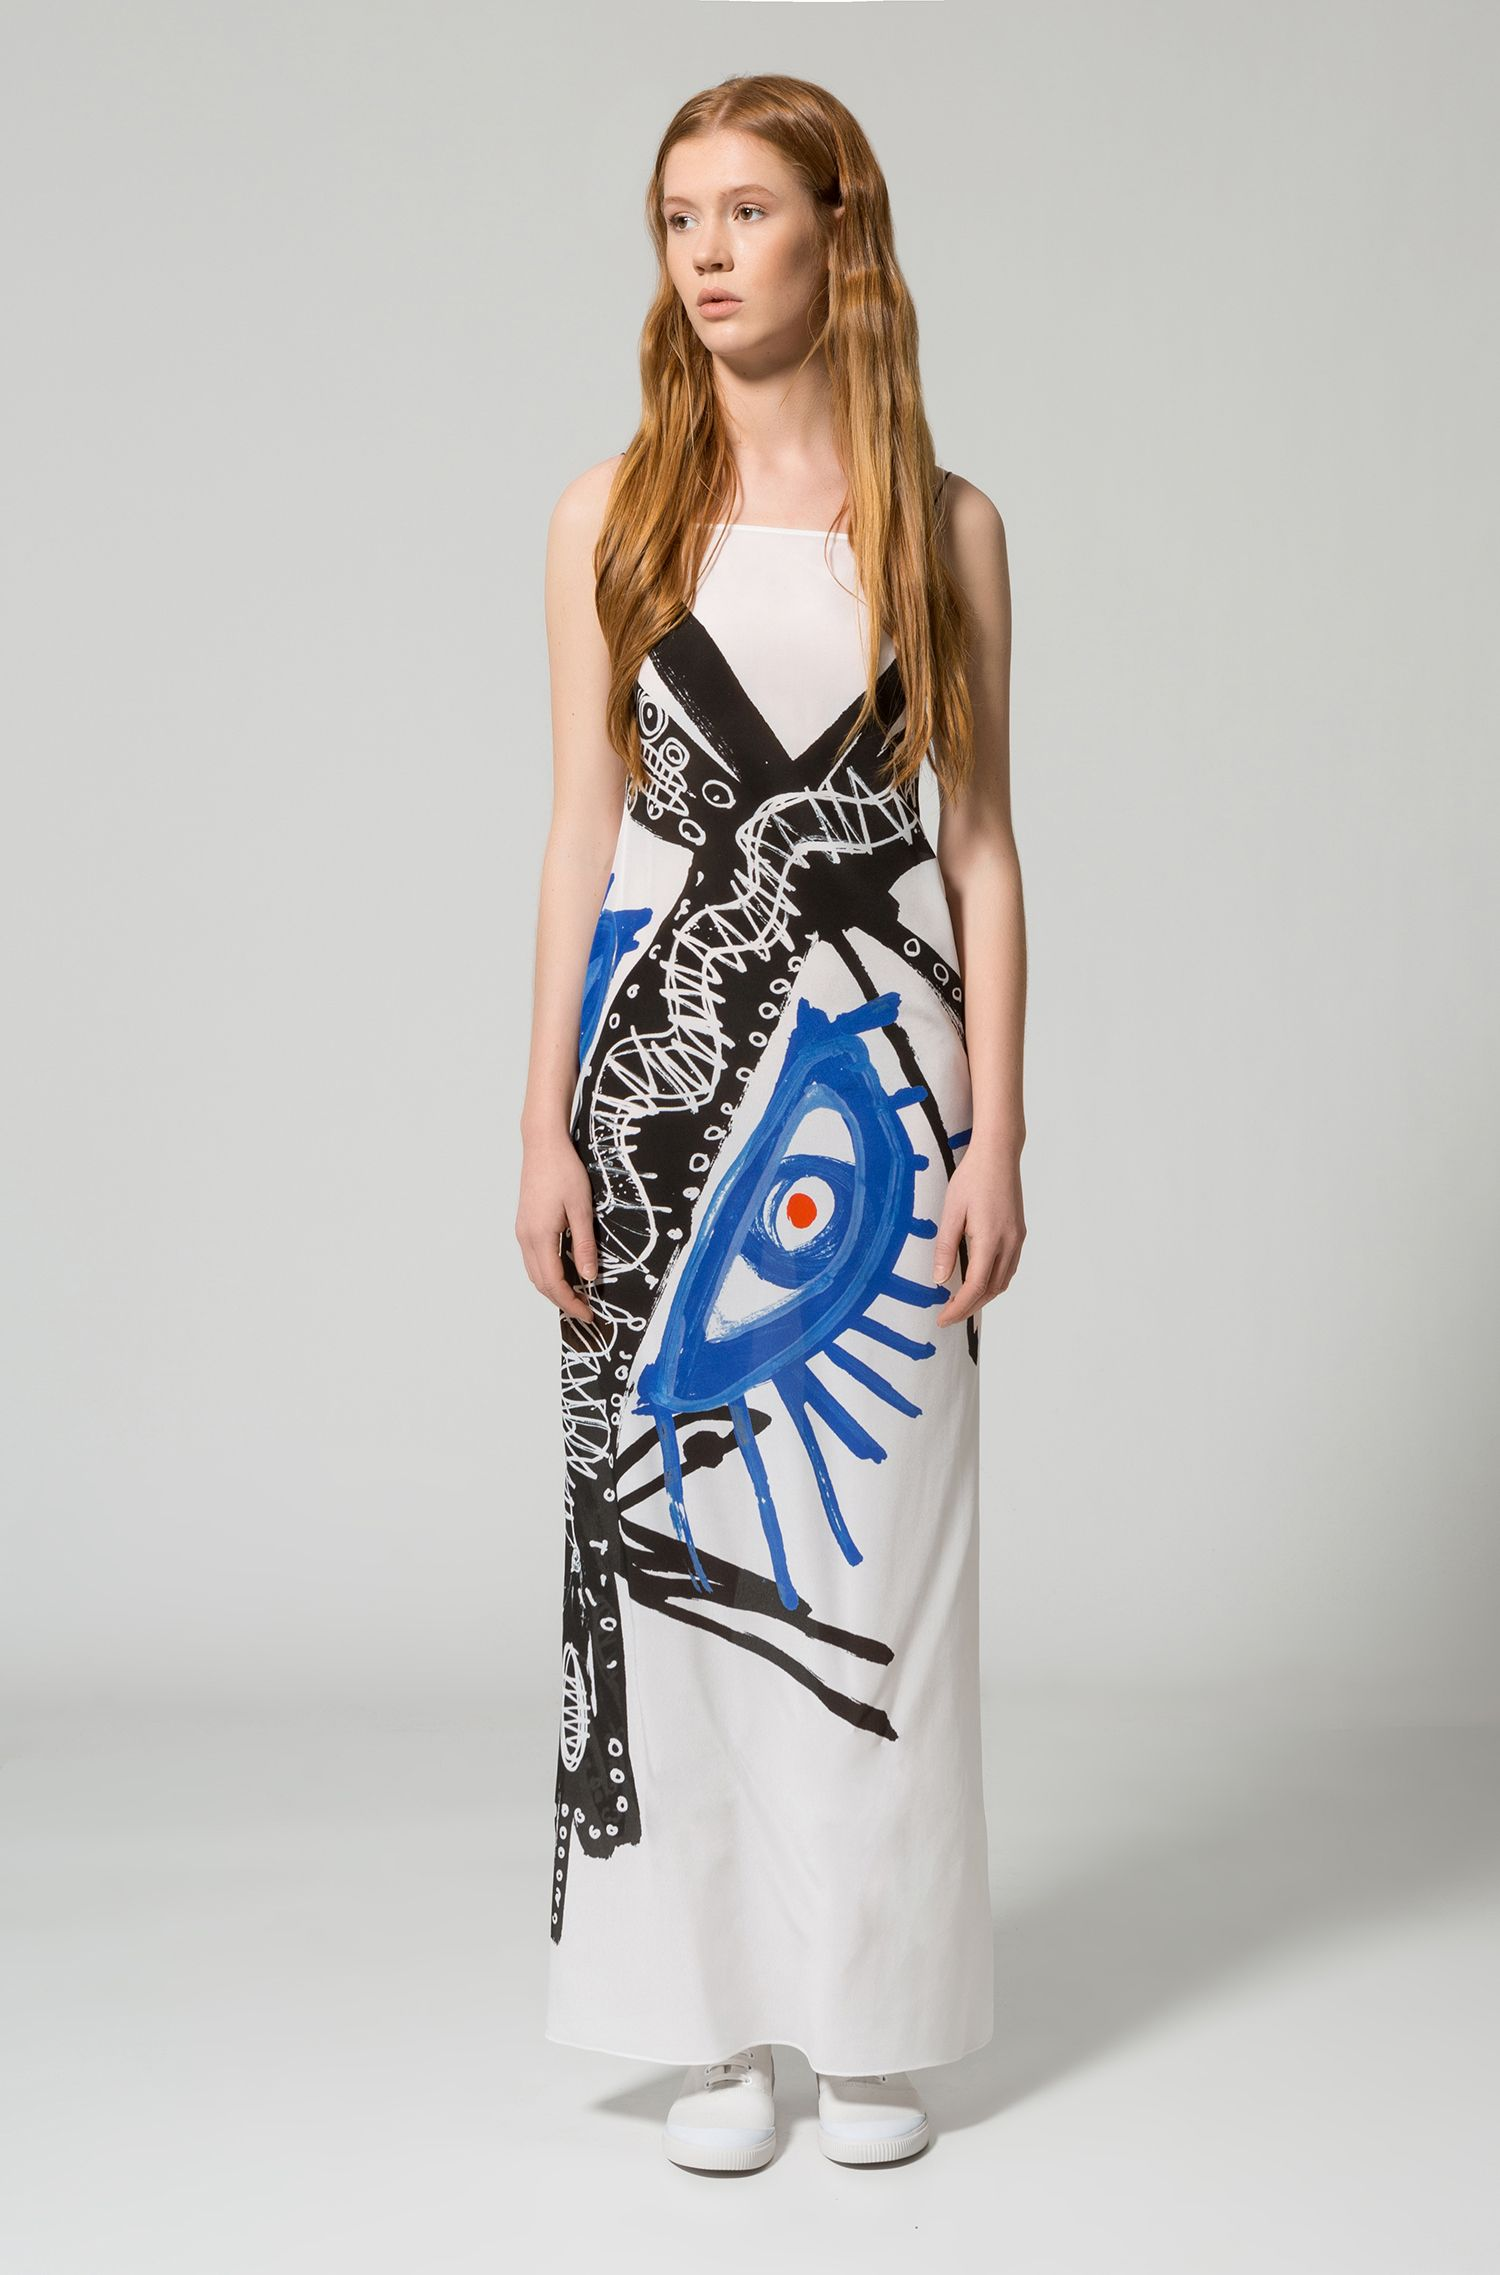 Printed Silk Dress | Kimina, Patterned